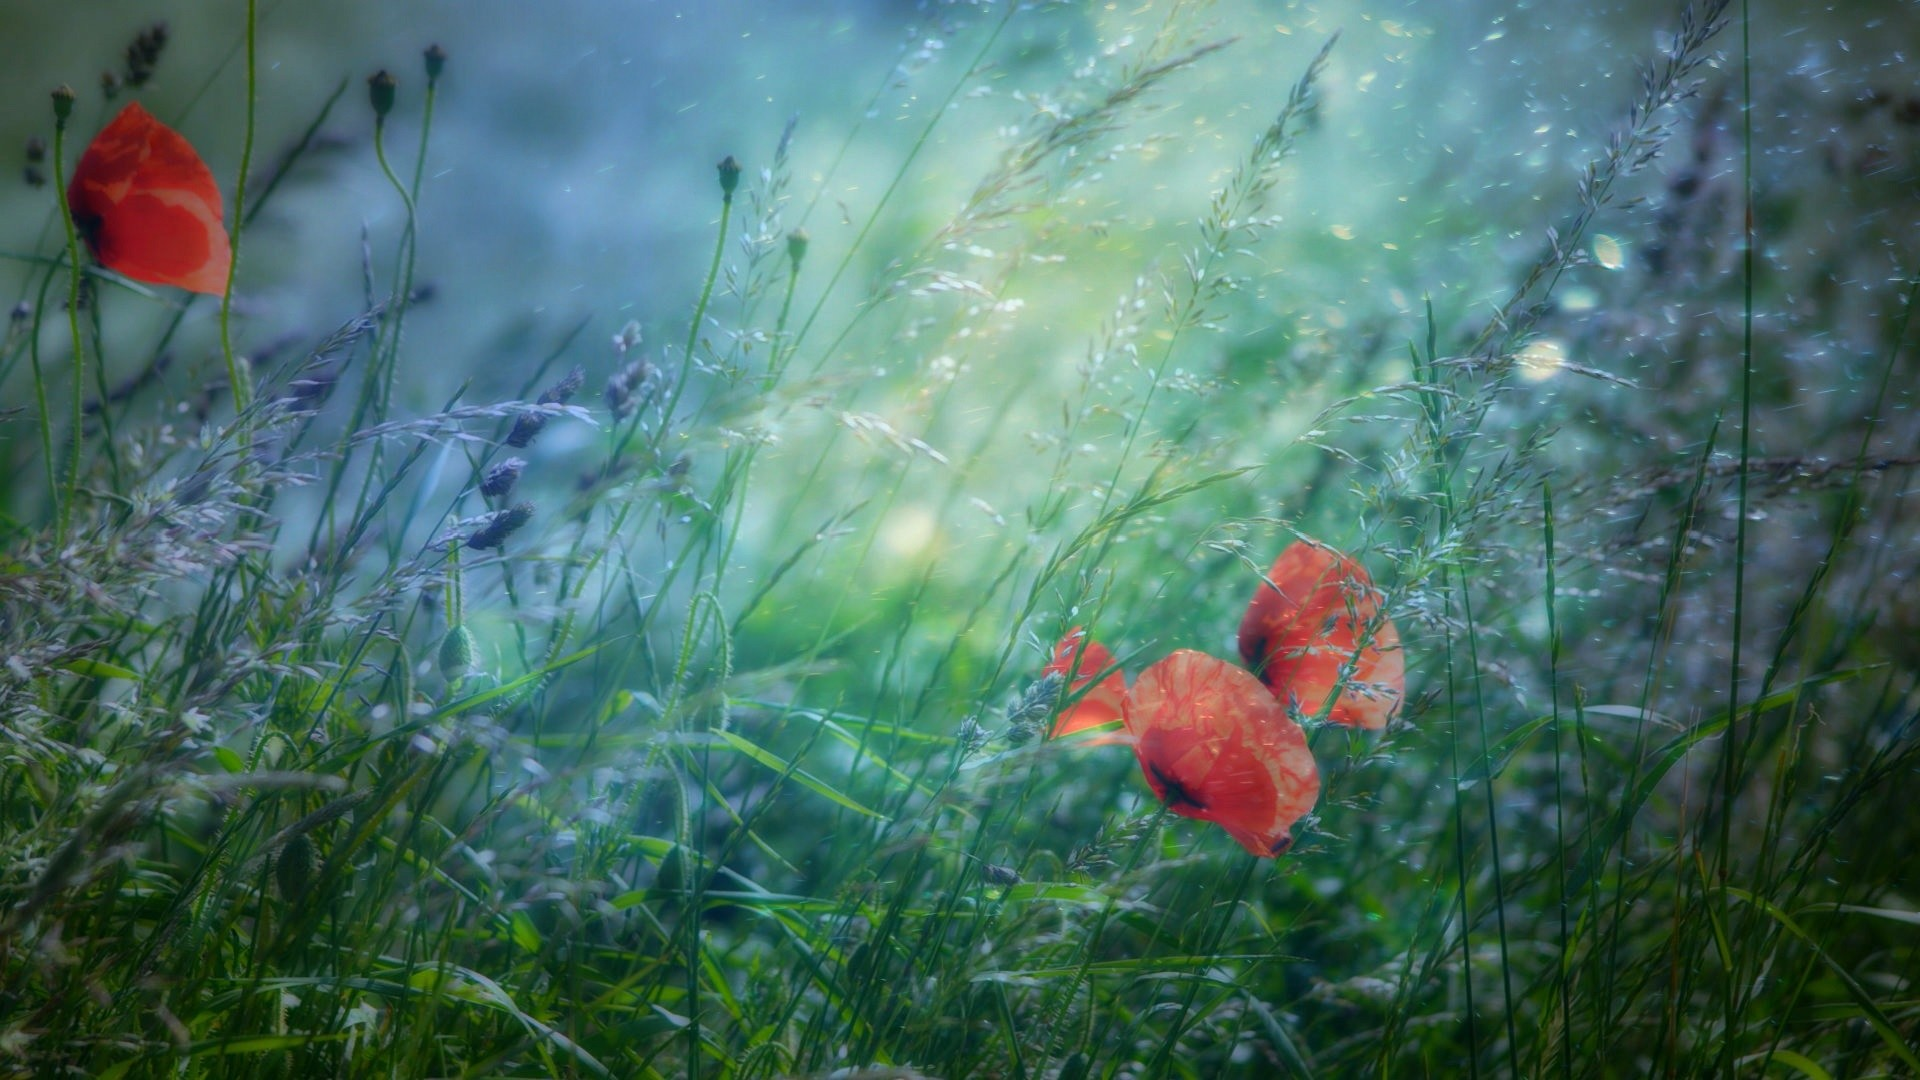 1920x1080 Small Red Flowers in Green Grass Photography.